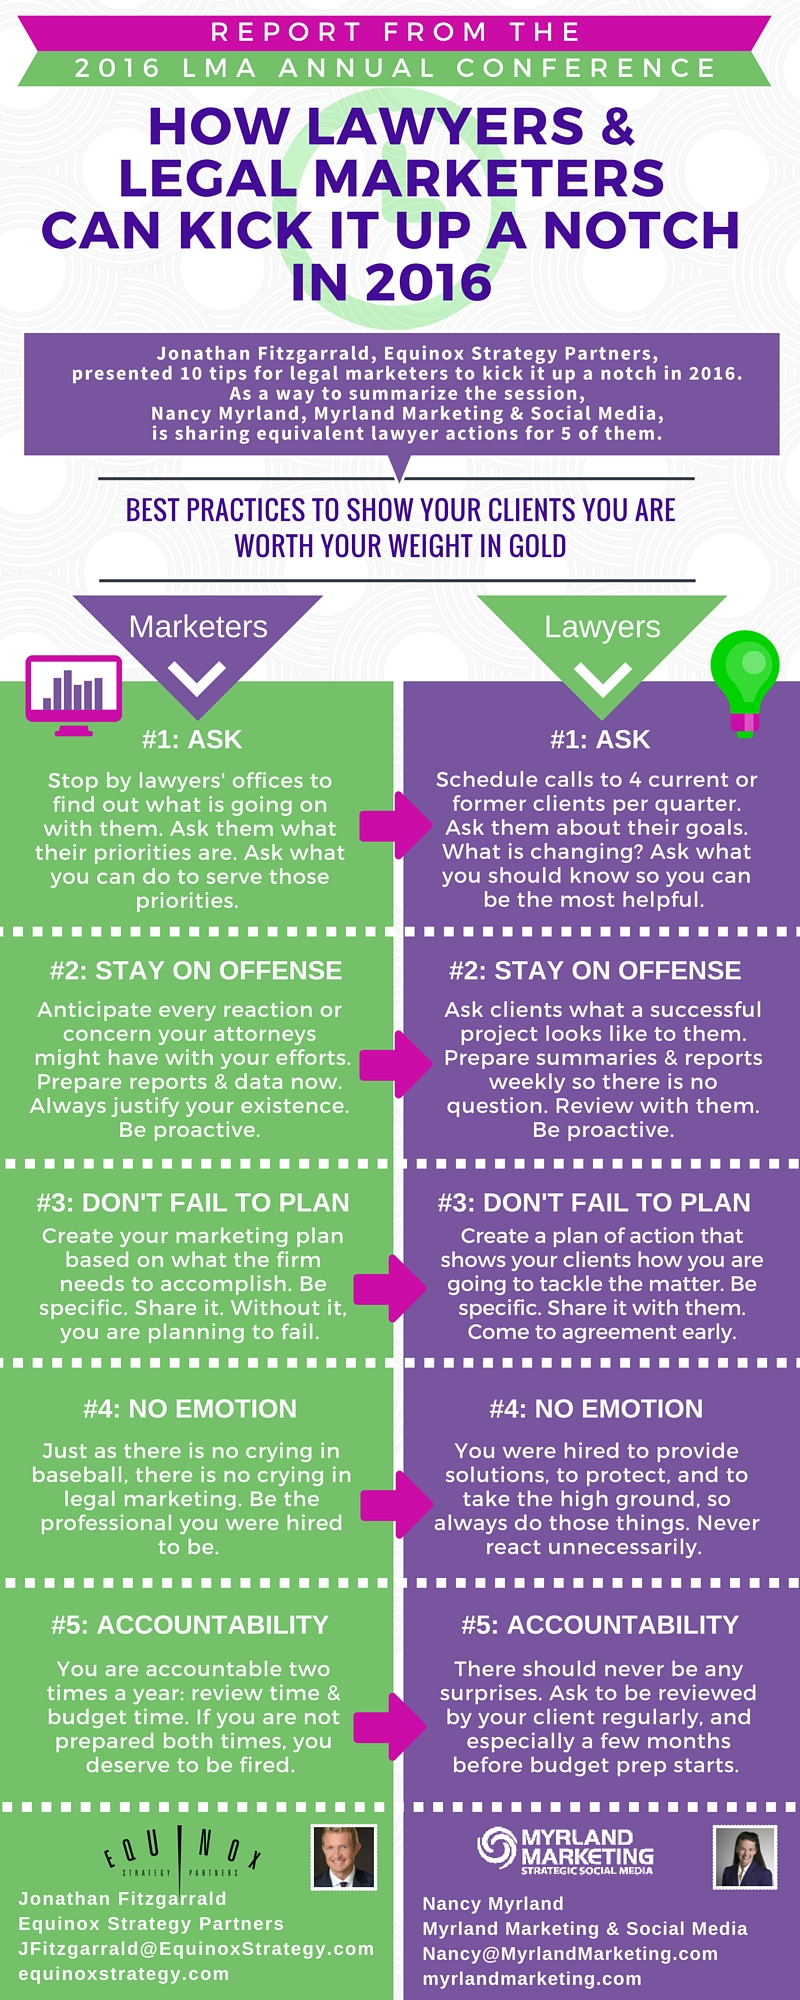 Lawyers & Legal Marketers How To Kick It Up A Notch In 2016 - An #LMA16 Infographic